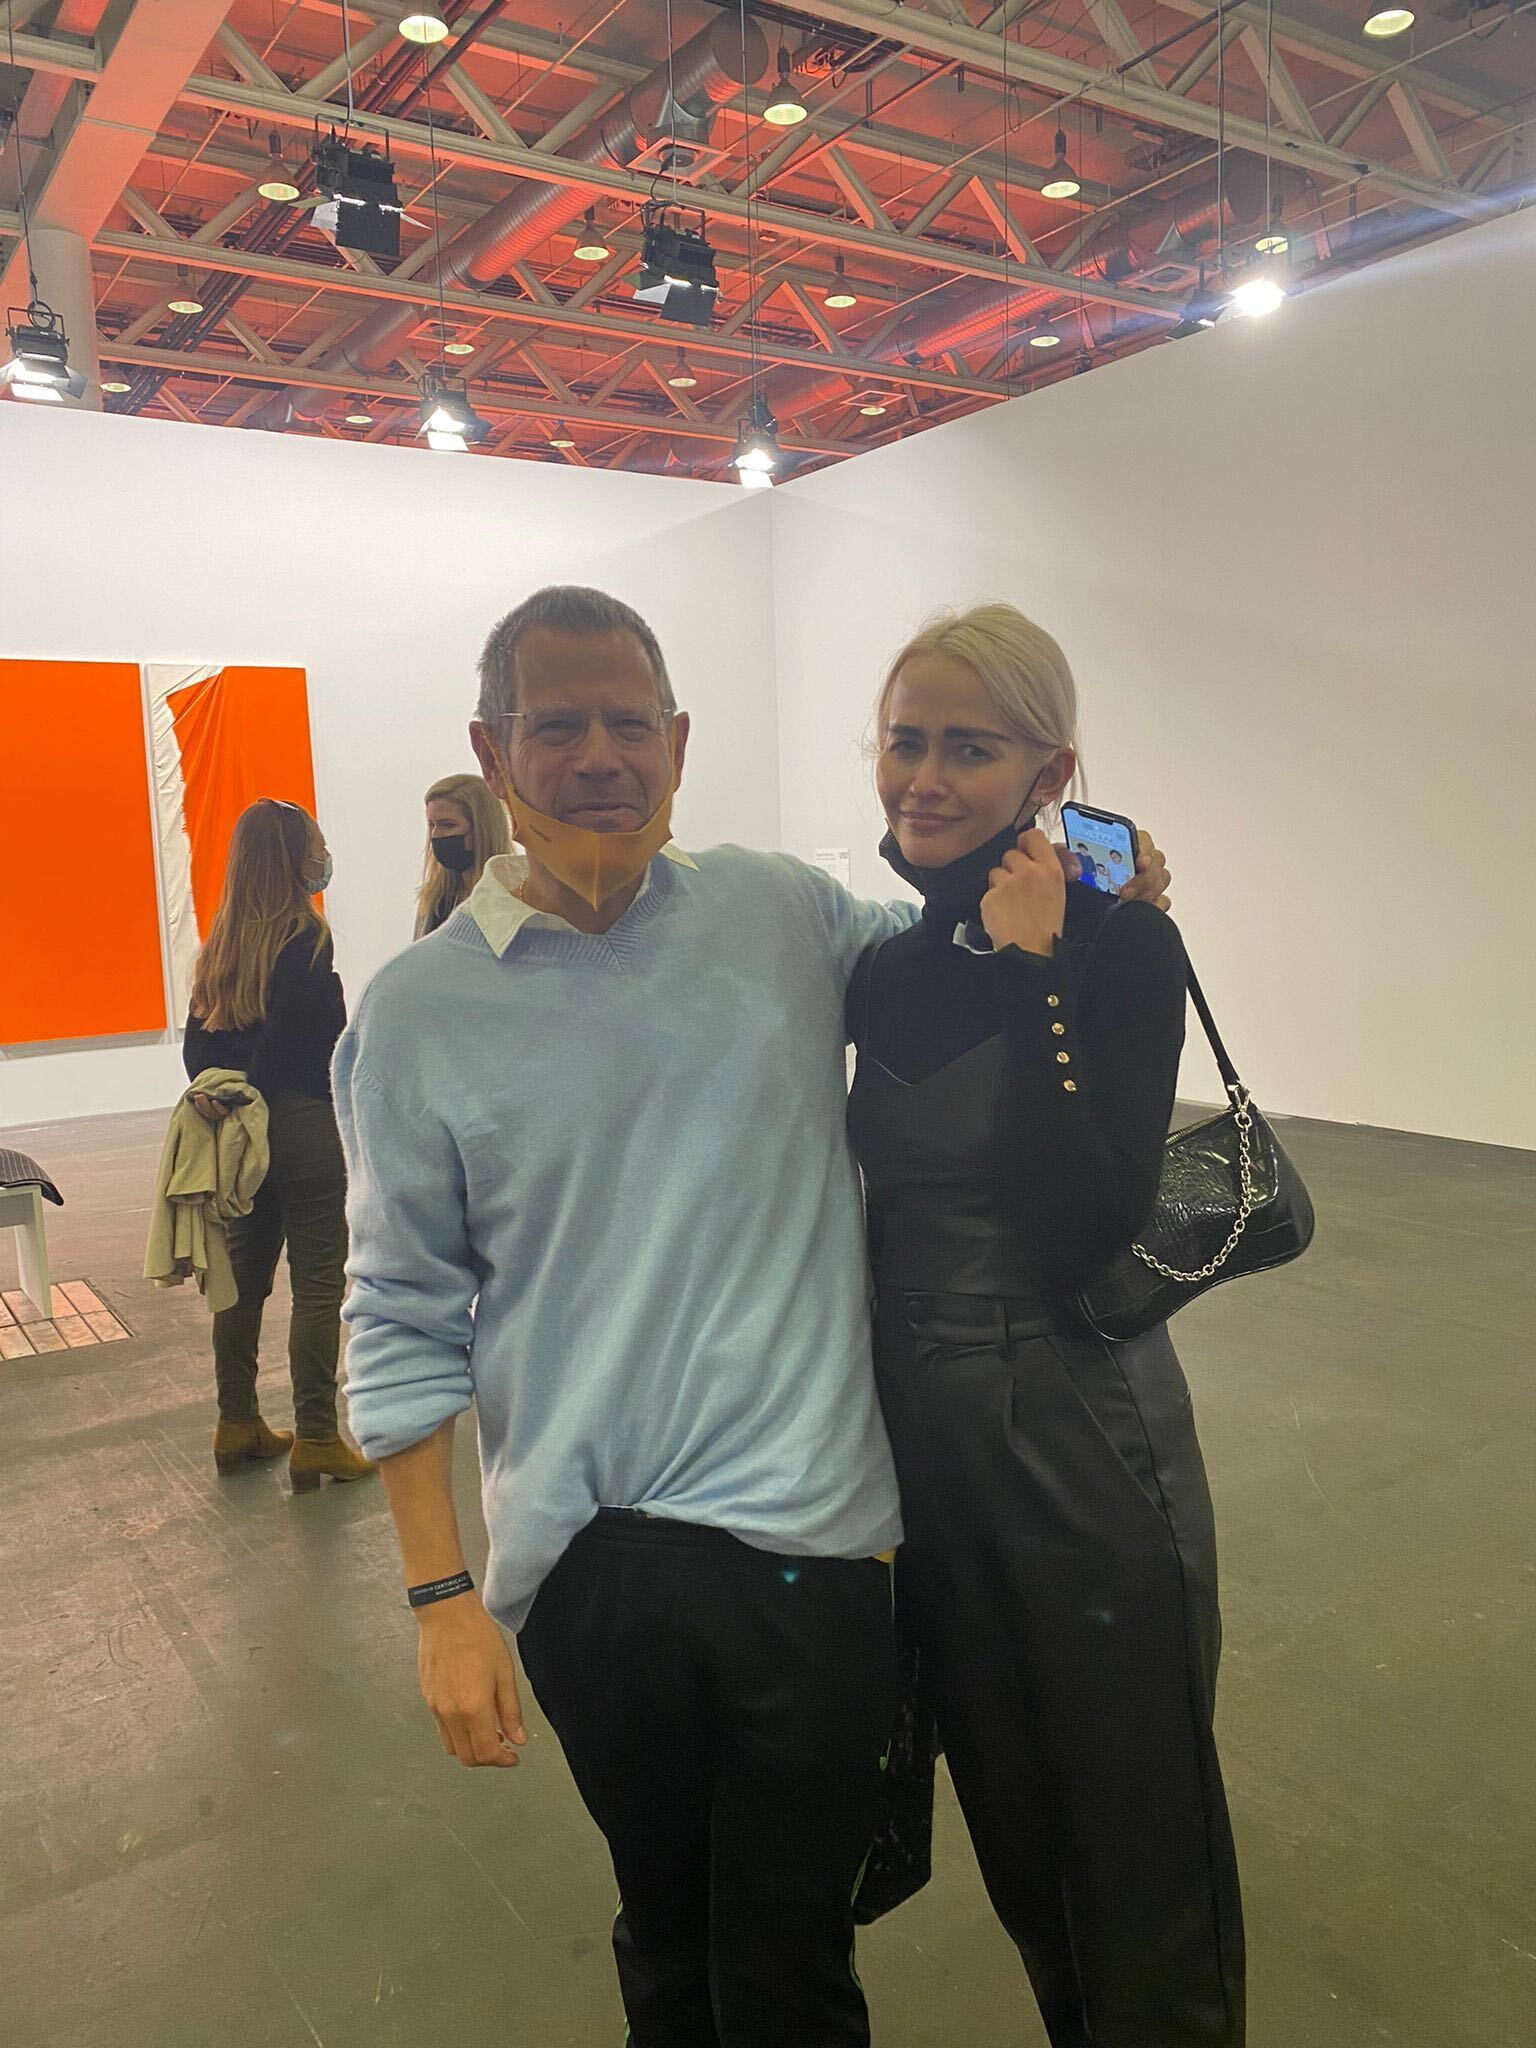 Olive Allen and artist, curator and critic Kenny Schachter (Dorian Batycka)